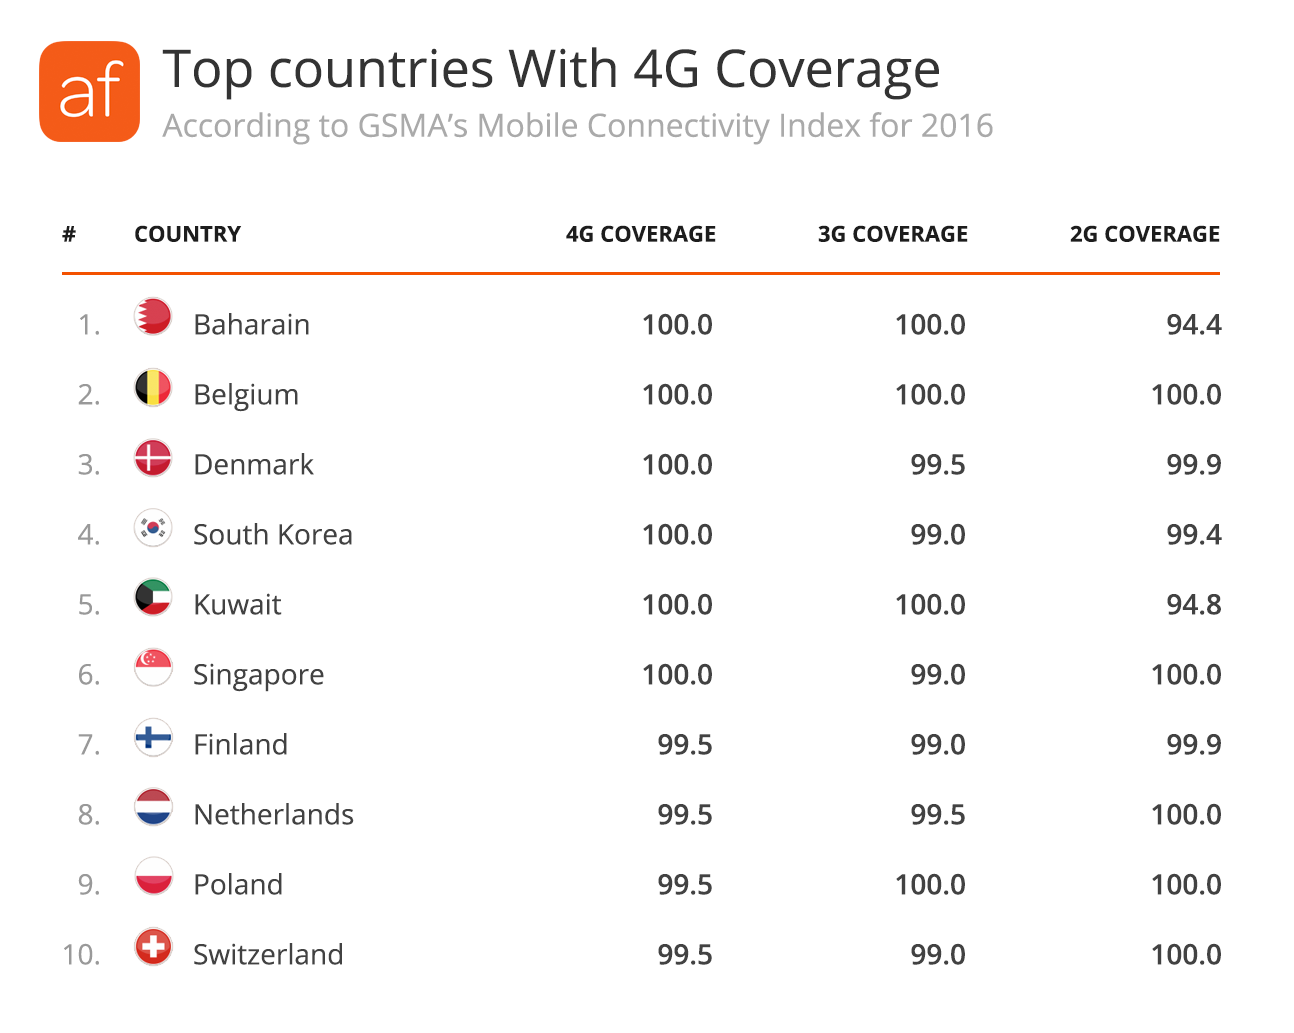 Top Countries with 4G Coverage